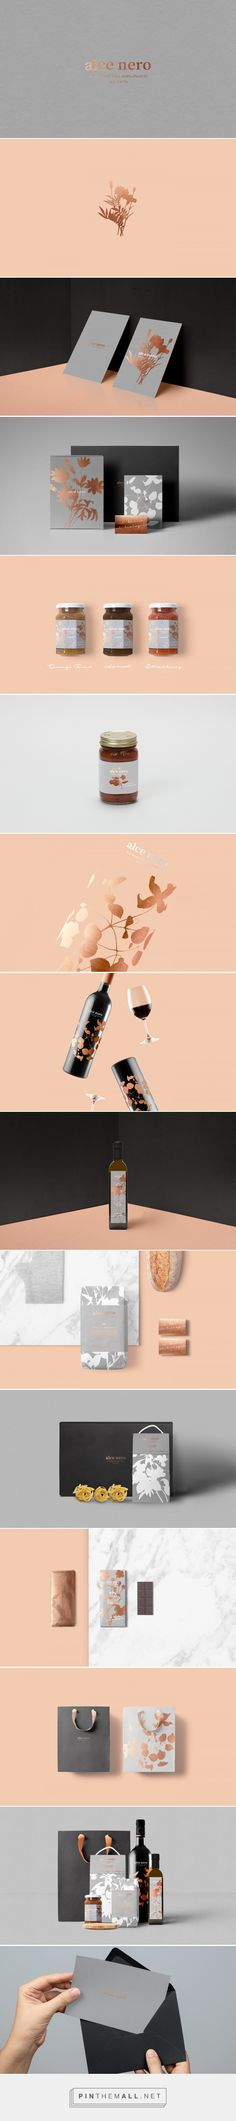 Alce Nero | Packaging Redesign on Behance | Fivestar Branding – Design and…